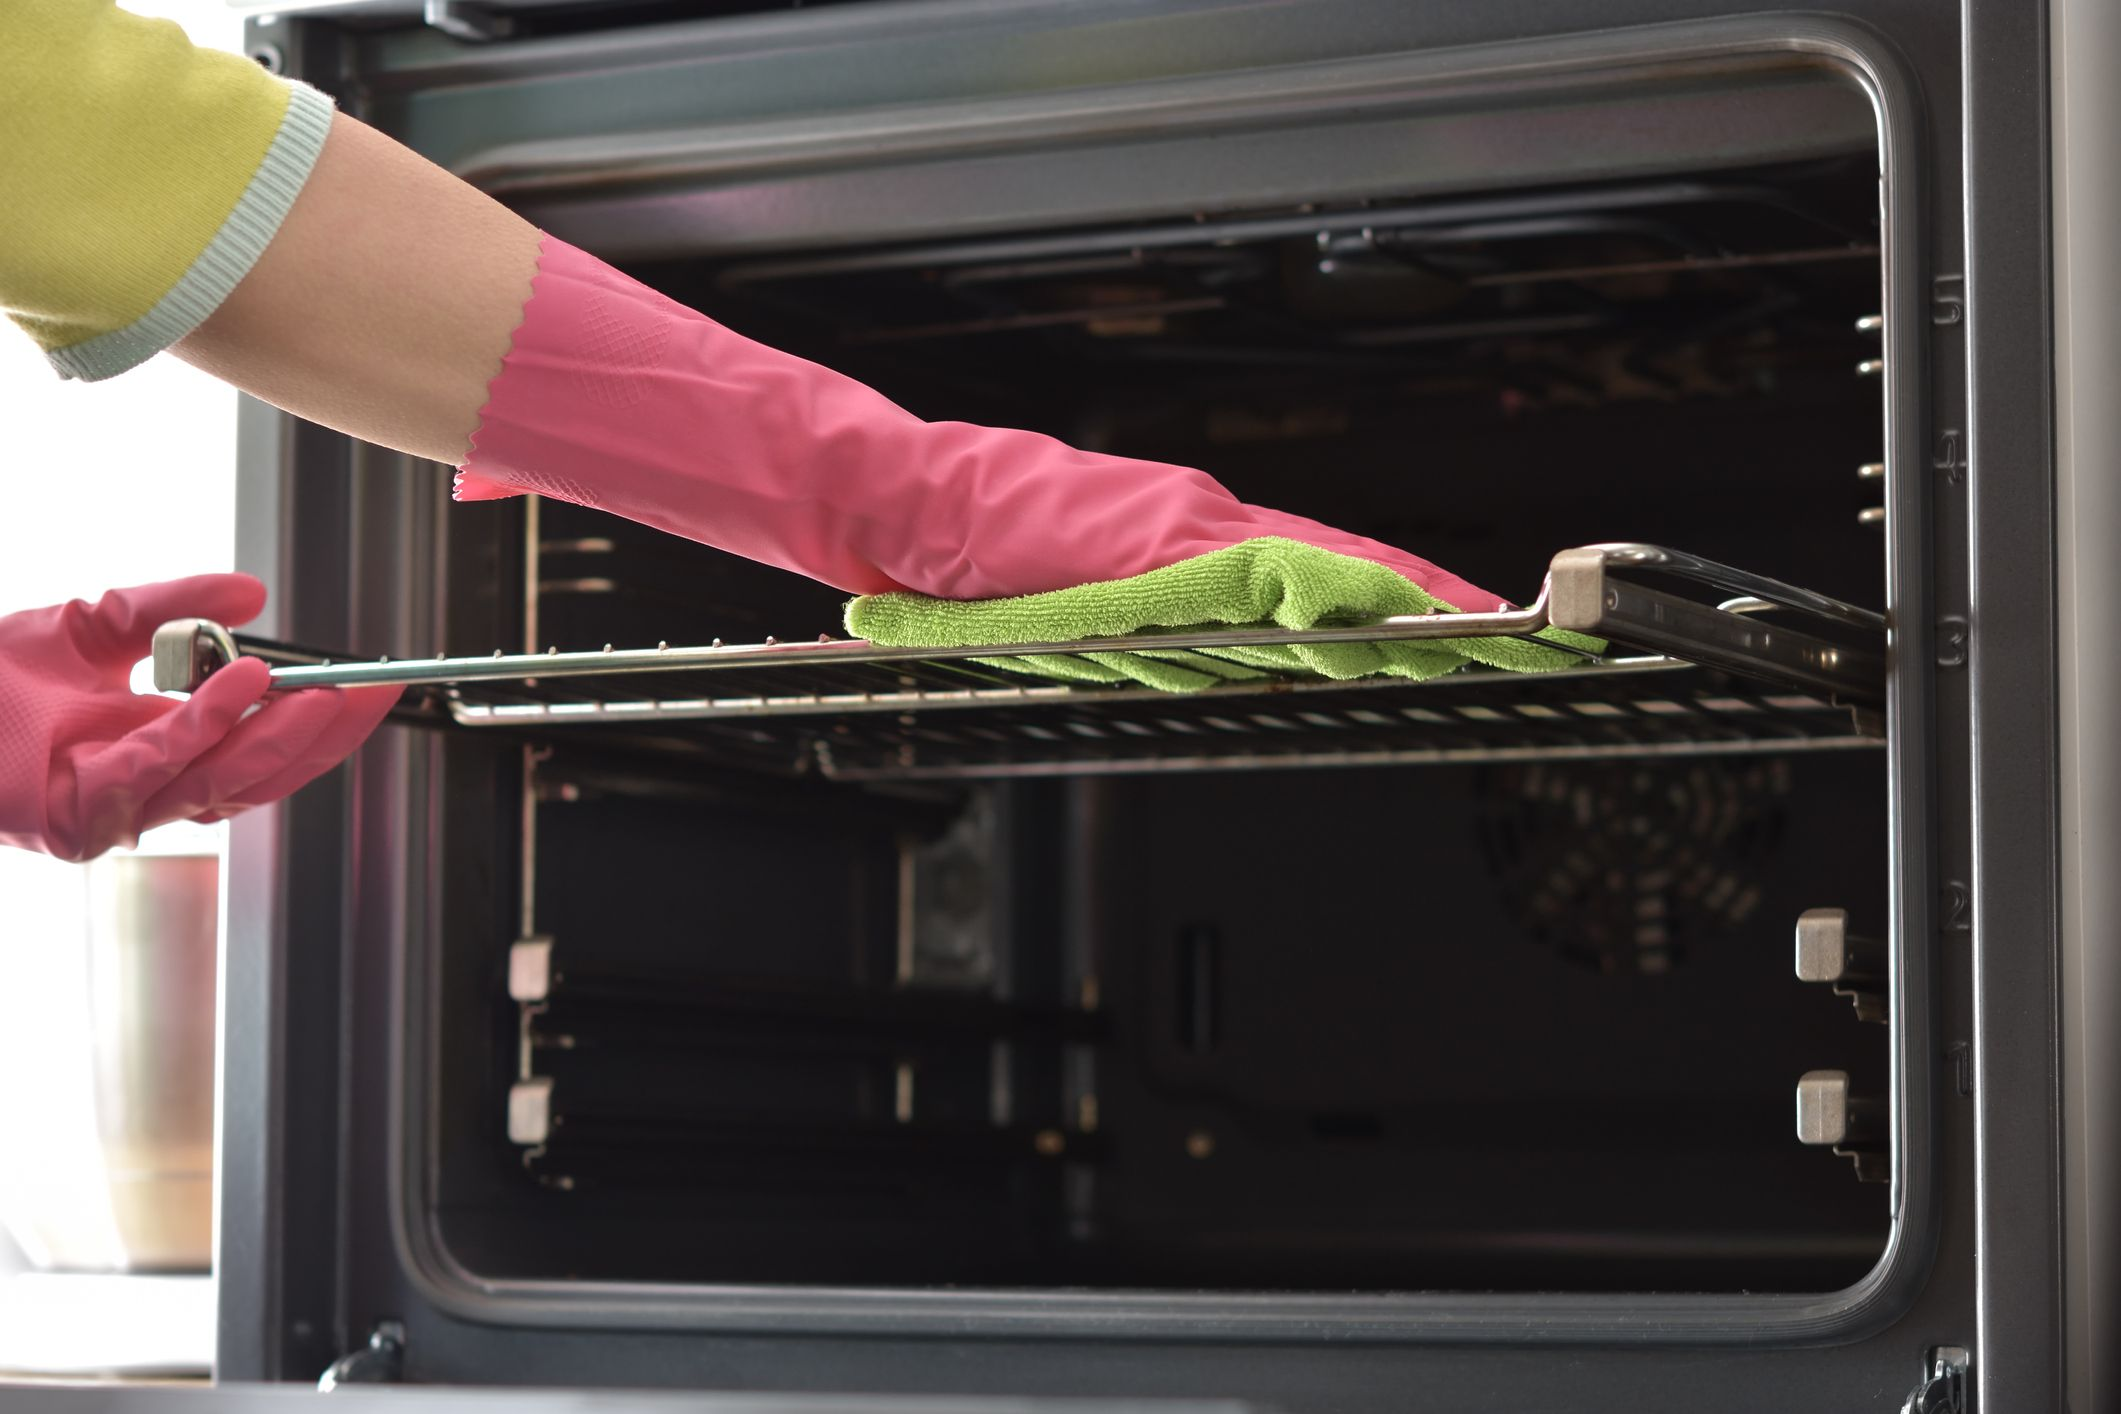 How to Clean Your Oven so It Shines